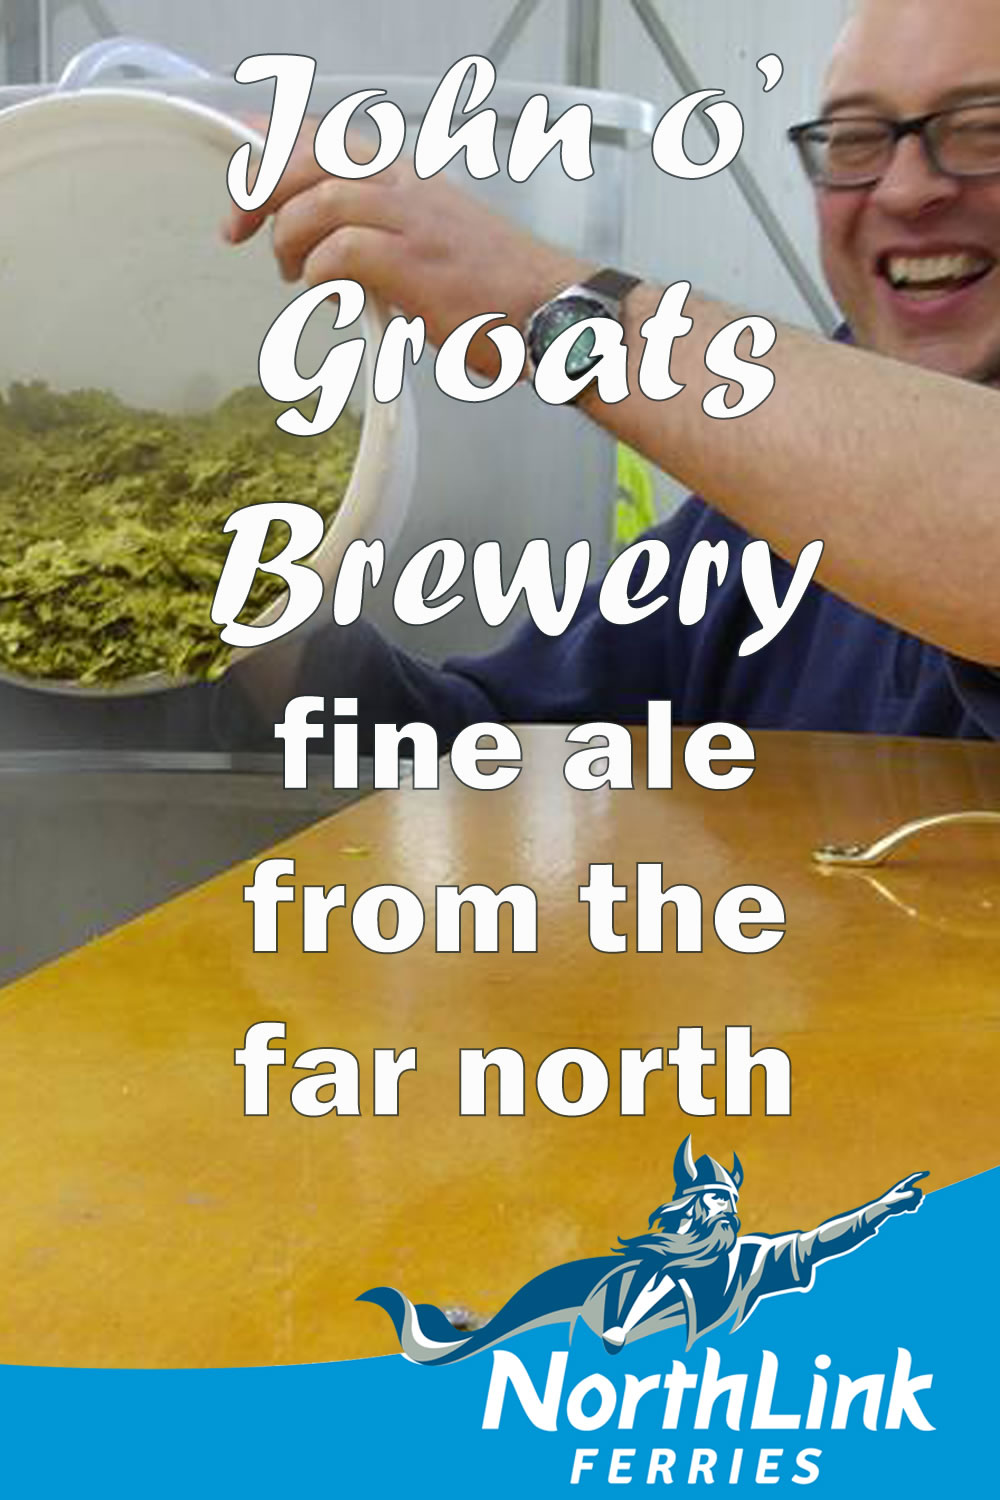 John o' Groats Brewery – fine ale from the far north